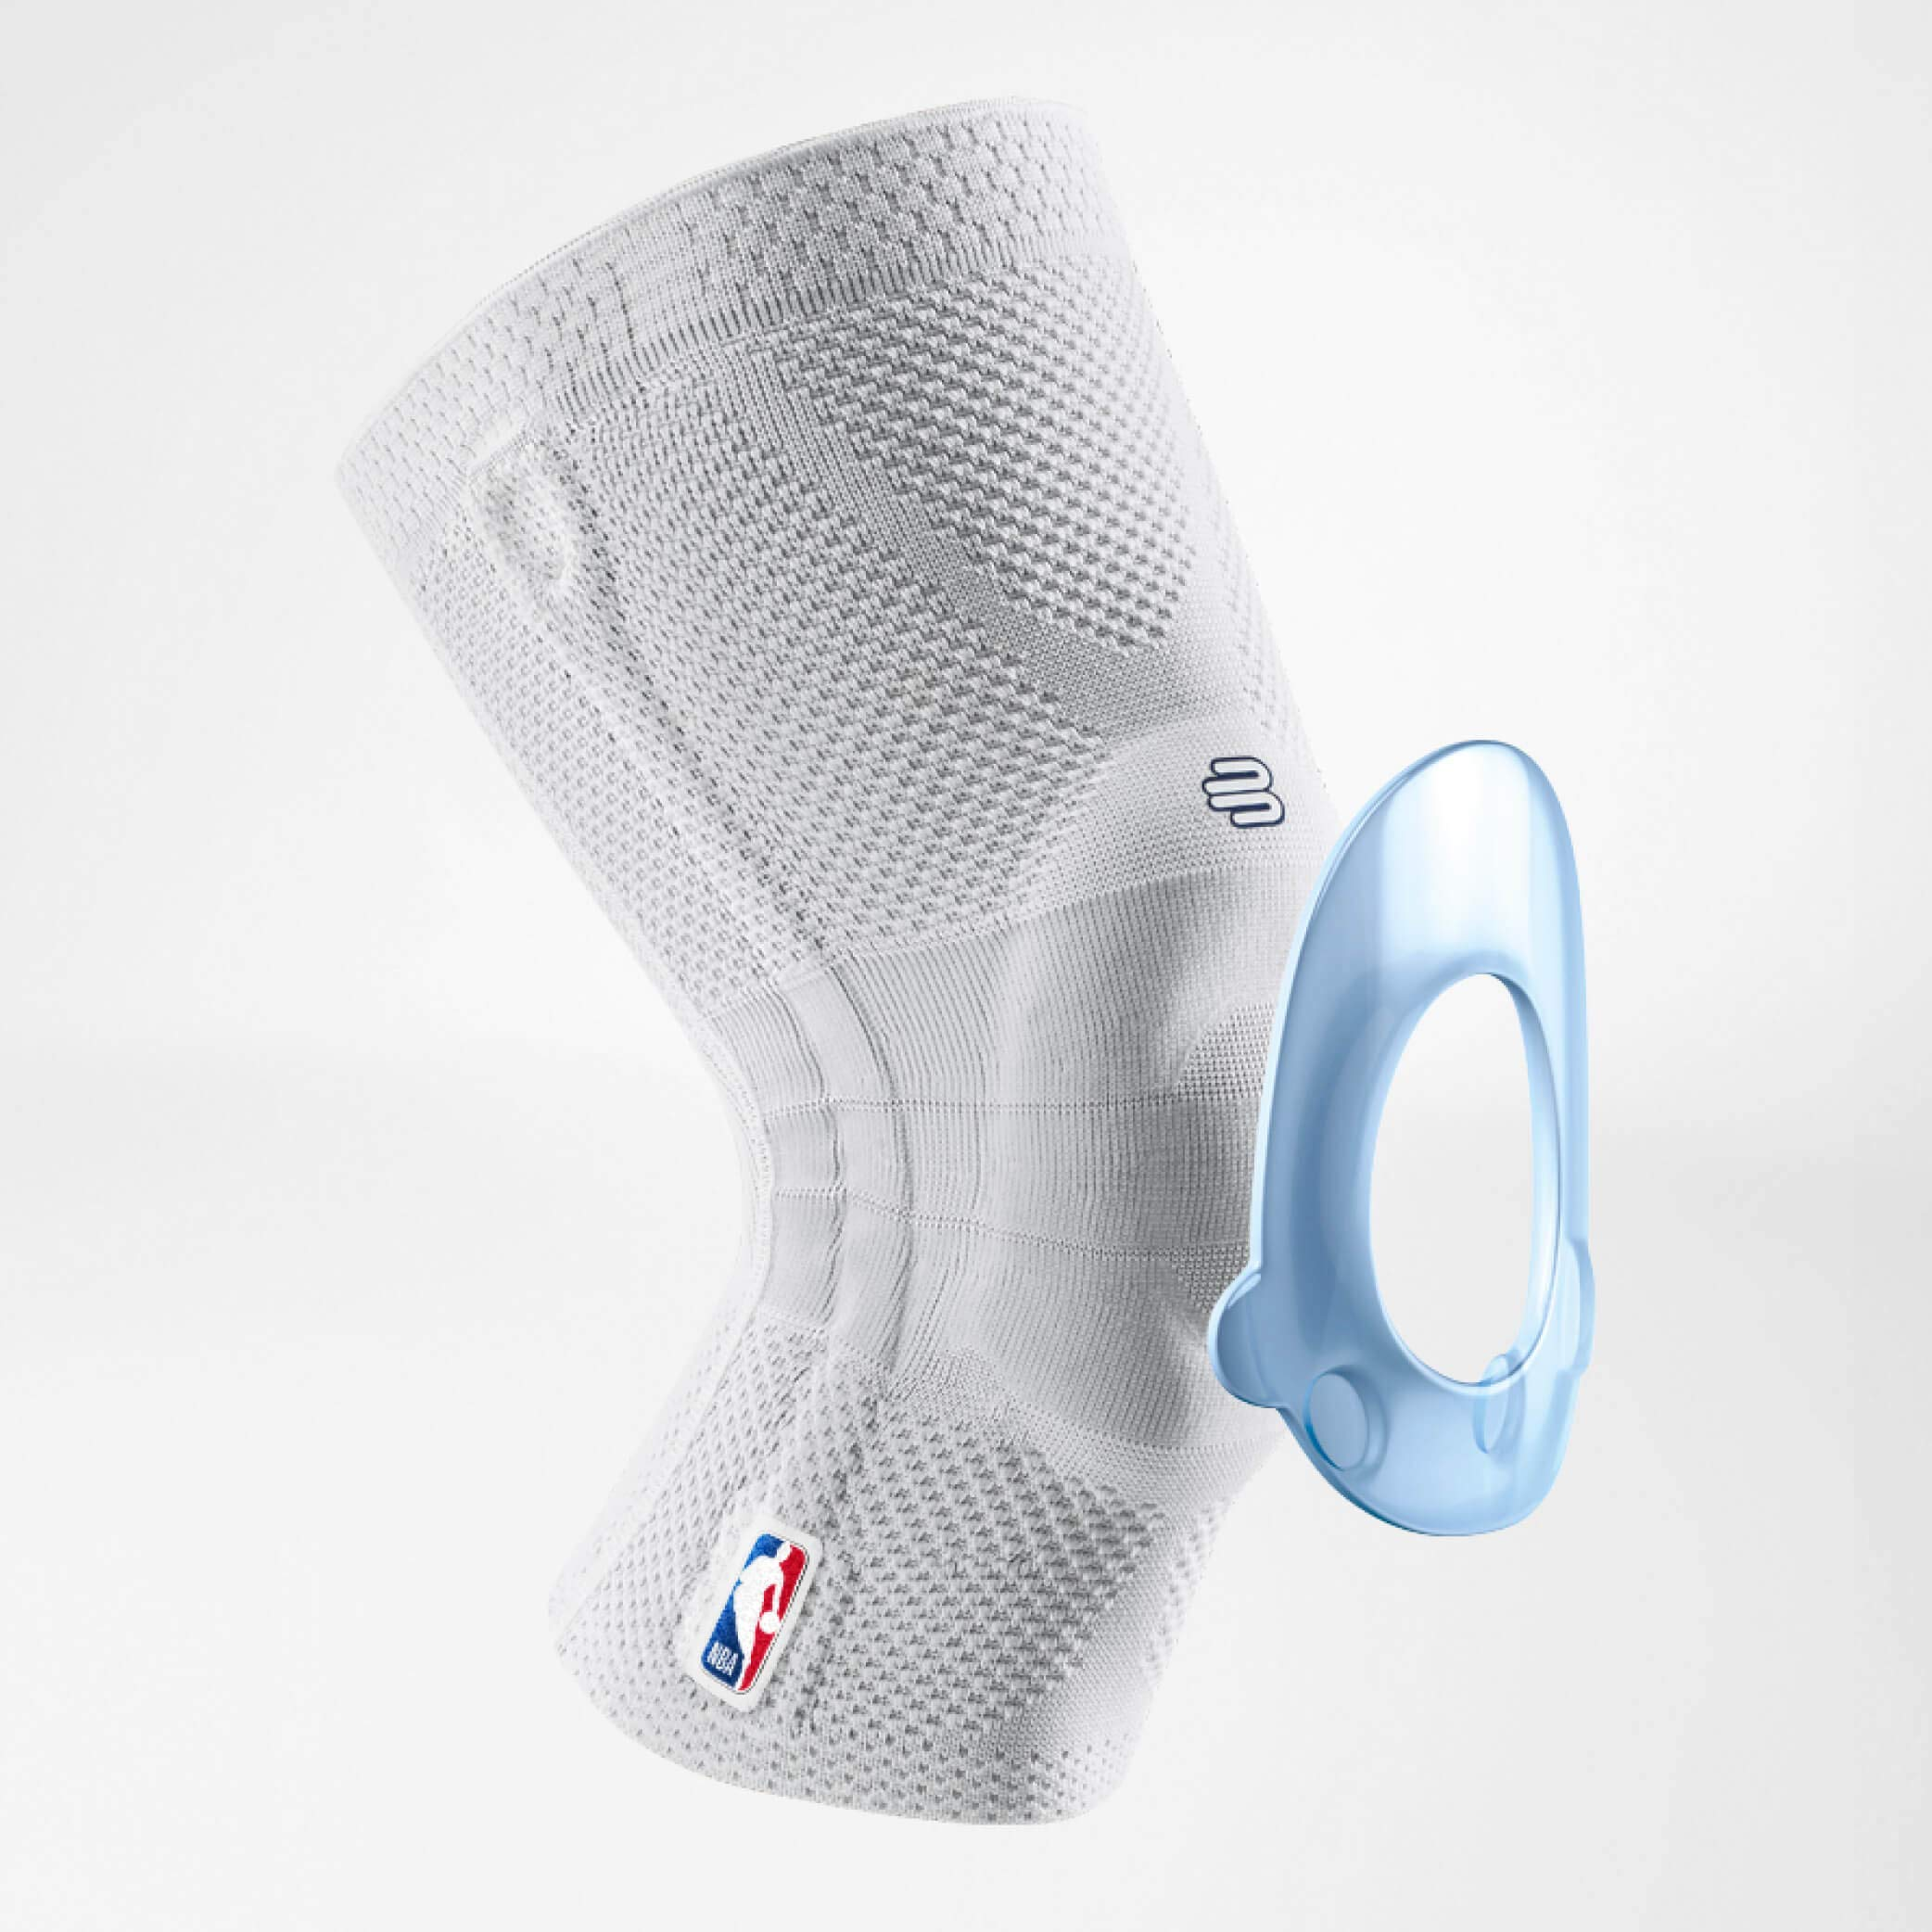 Bauerfeind GenuTrain NBA Knee Brace - Basketball Support with Medical Compression - Sleeve Design with Patella Pad Gel Ring for Pain Relief & Stabilization (White, S) by Bauerfeind (Image #3)